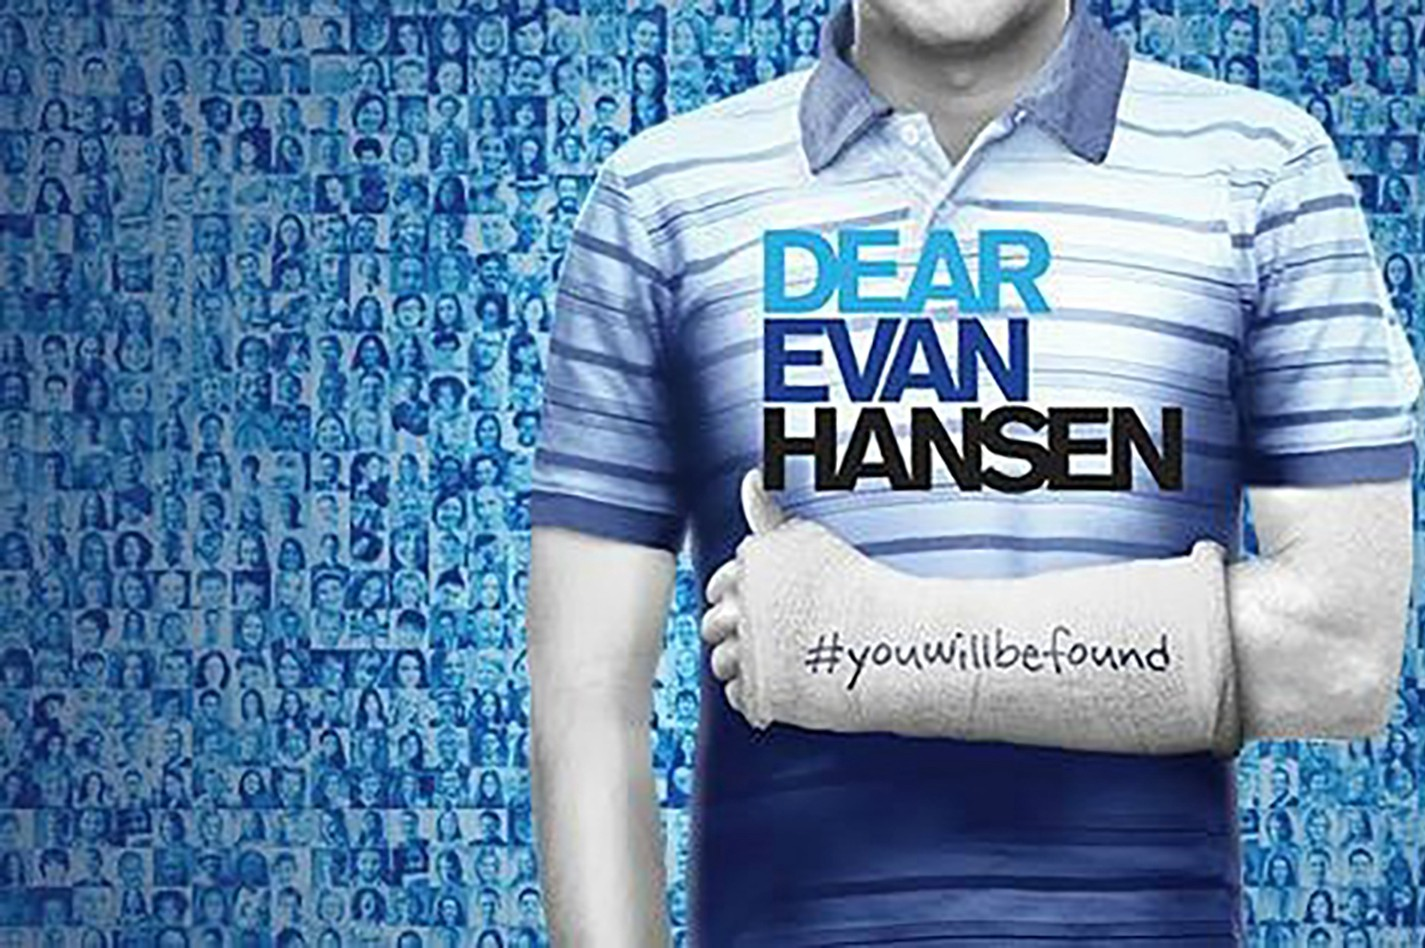 Story of Dear Evan Hansen - Jennifer Poon - Medium